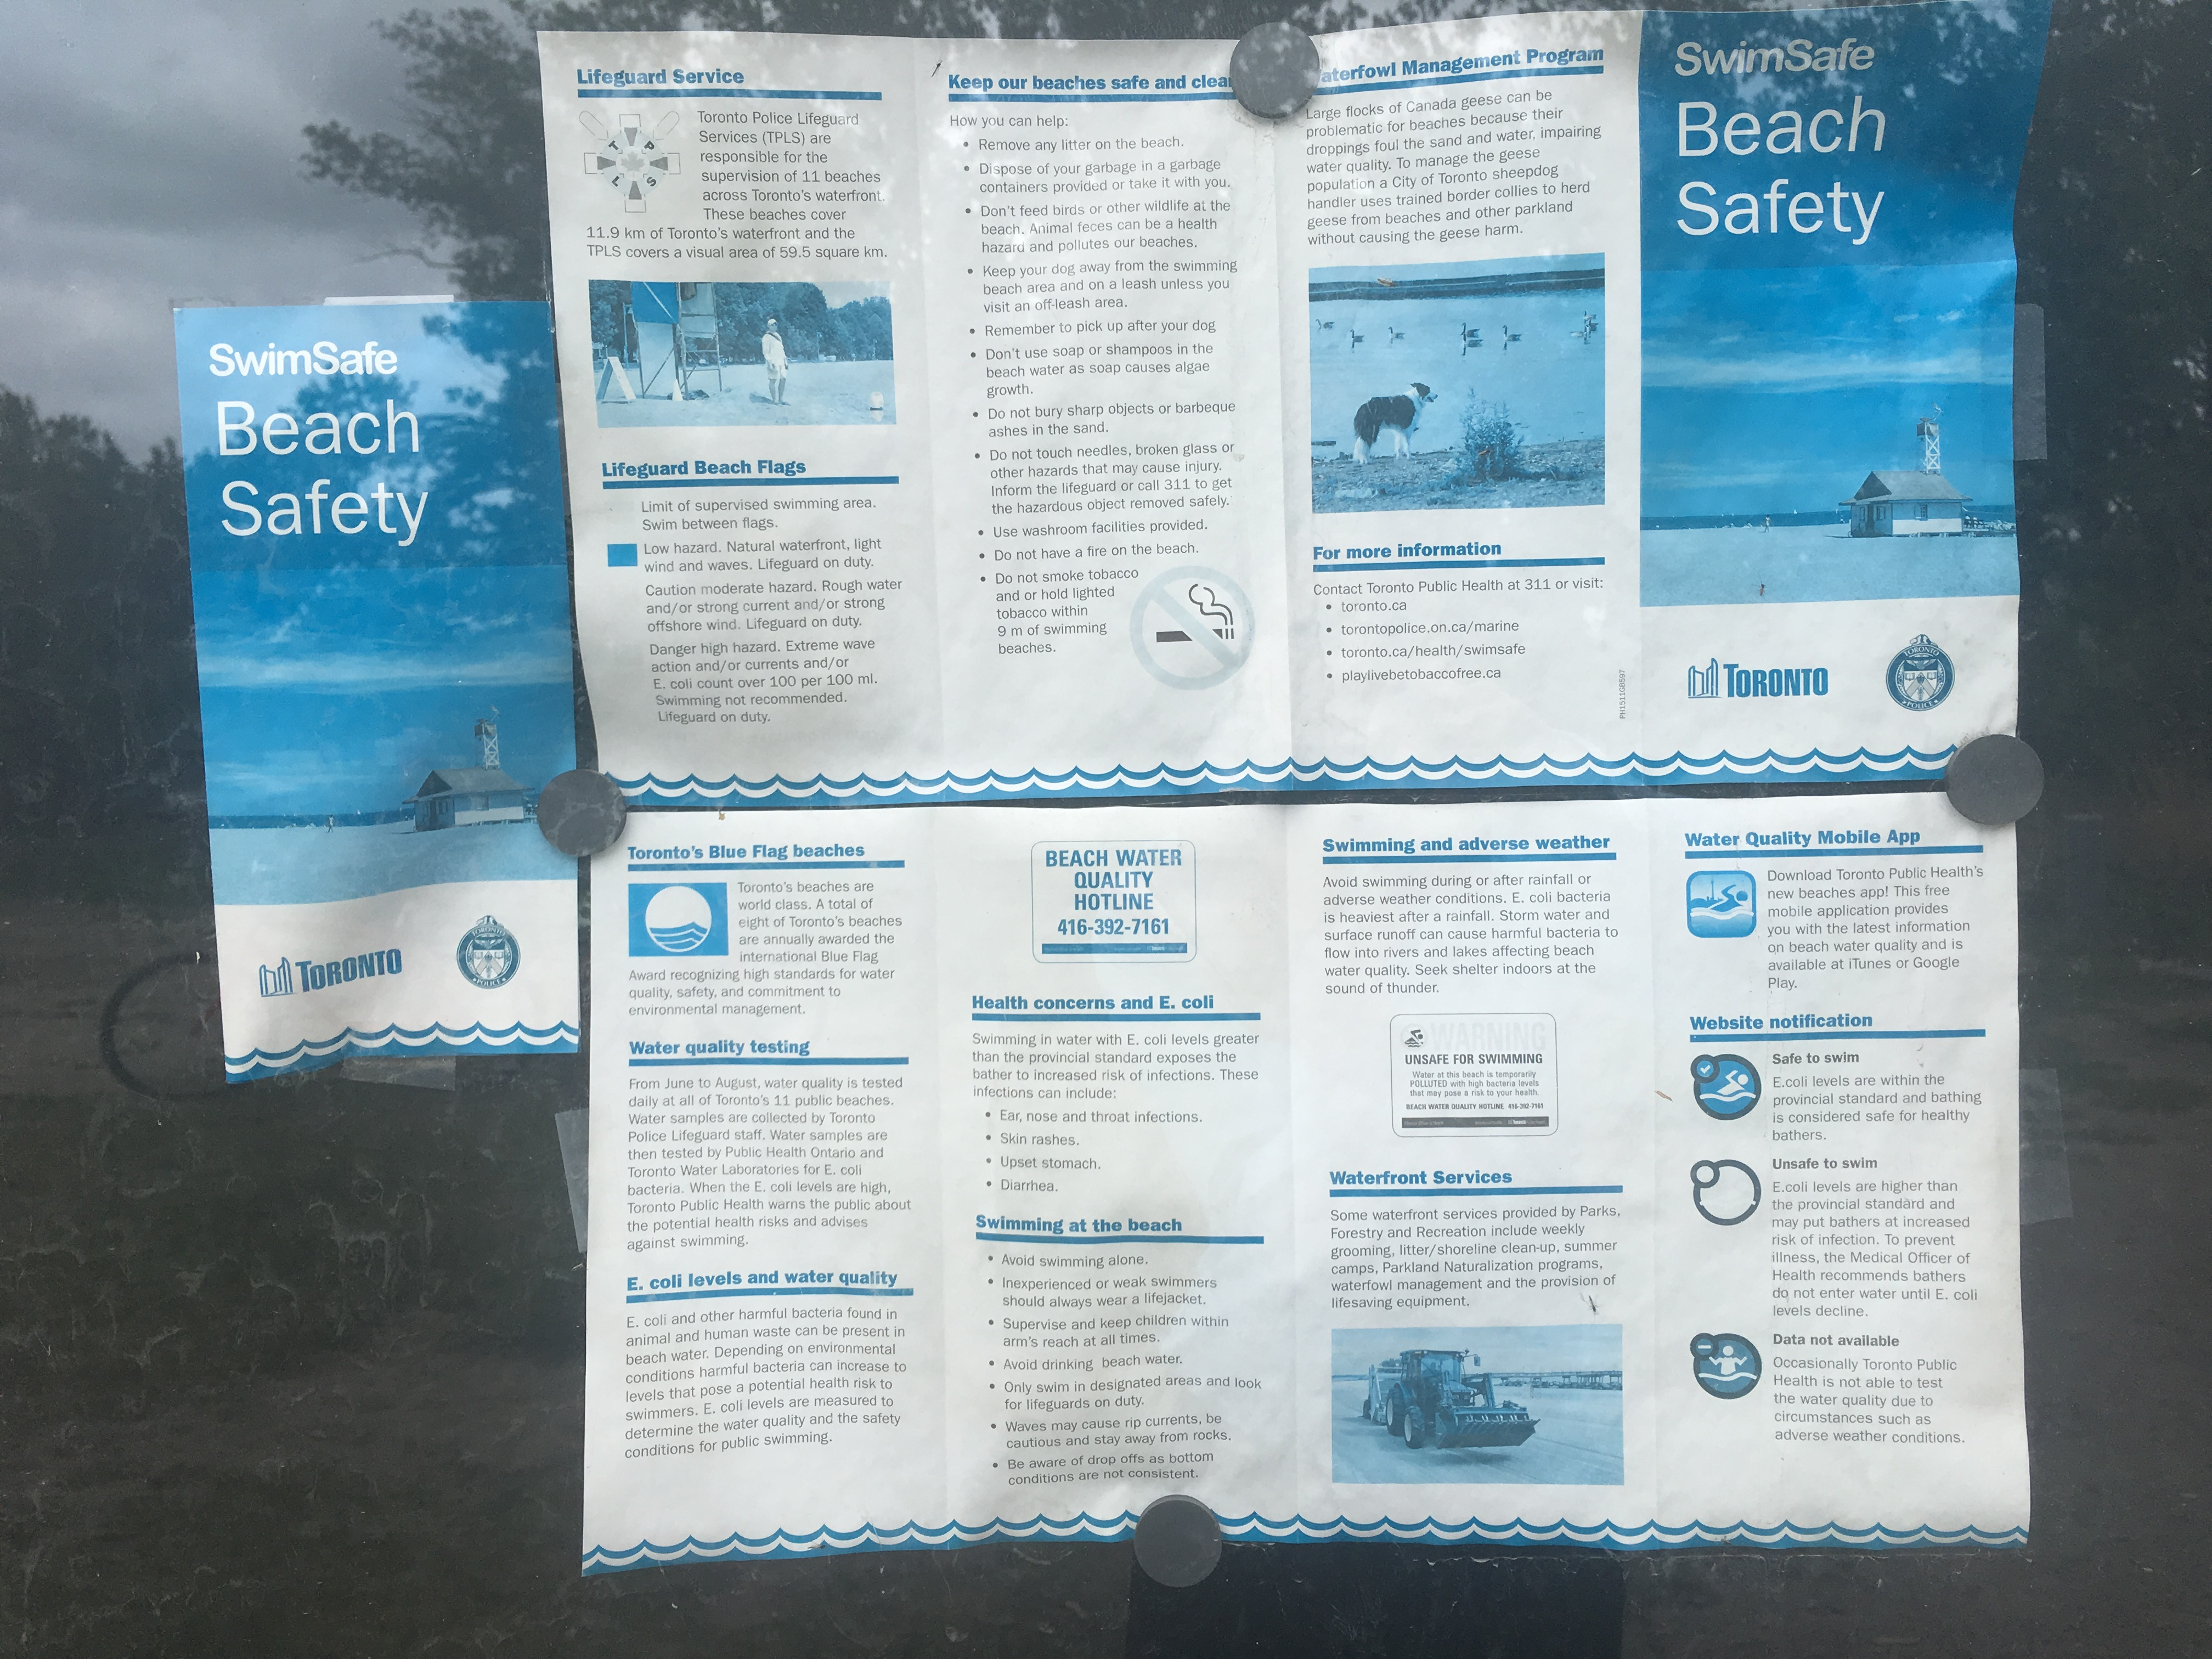 2:46 p.m. June 5, 2018. A pamphlet at Cherry Beach near the bus stop, advertising a Toronto Public Health mobile app. Signal Toronto could not find a Toronto Public Health app online.